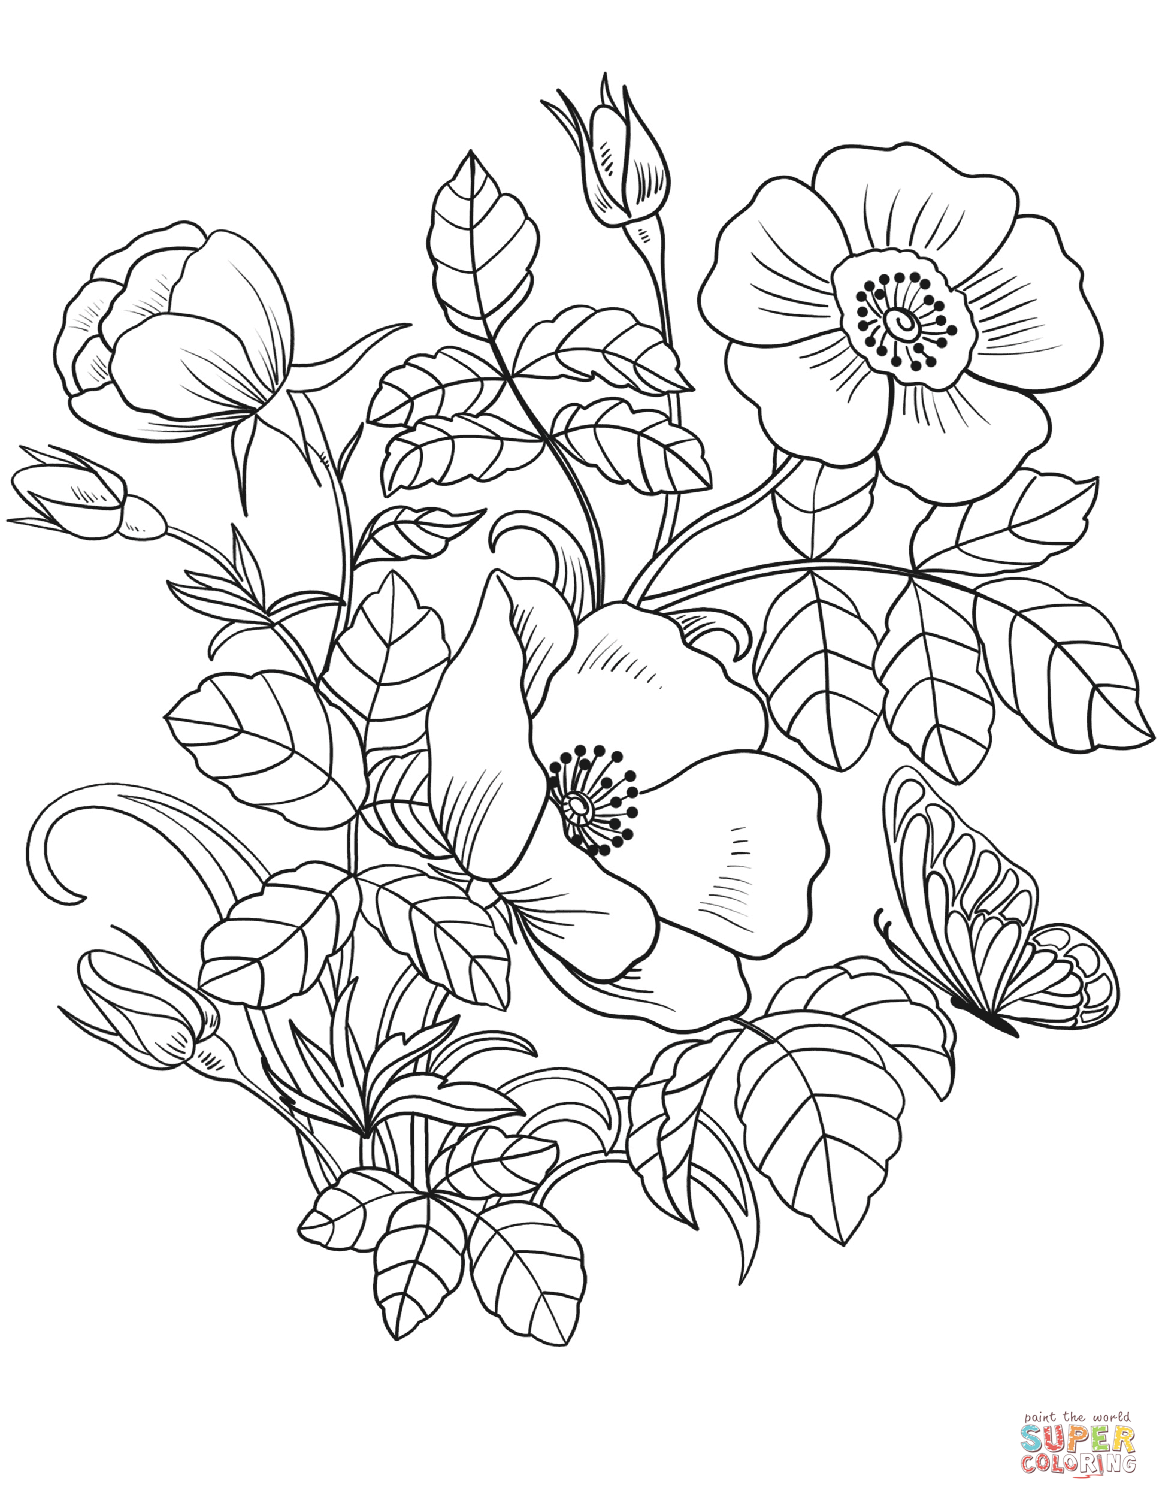 Free Coloring Pages Spring Flowers In 2020 Flower Coloring Sheets Spring Coloring Sheets Spring Coloring Pages